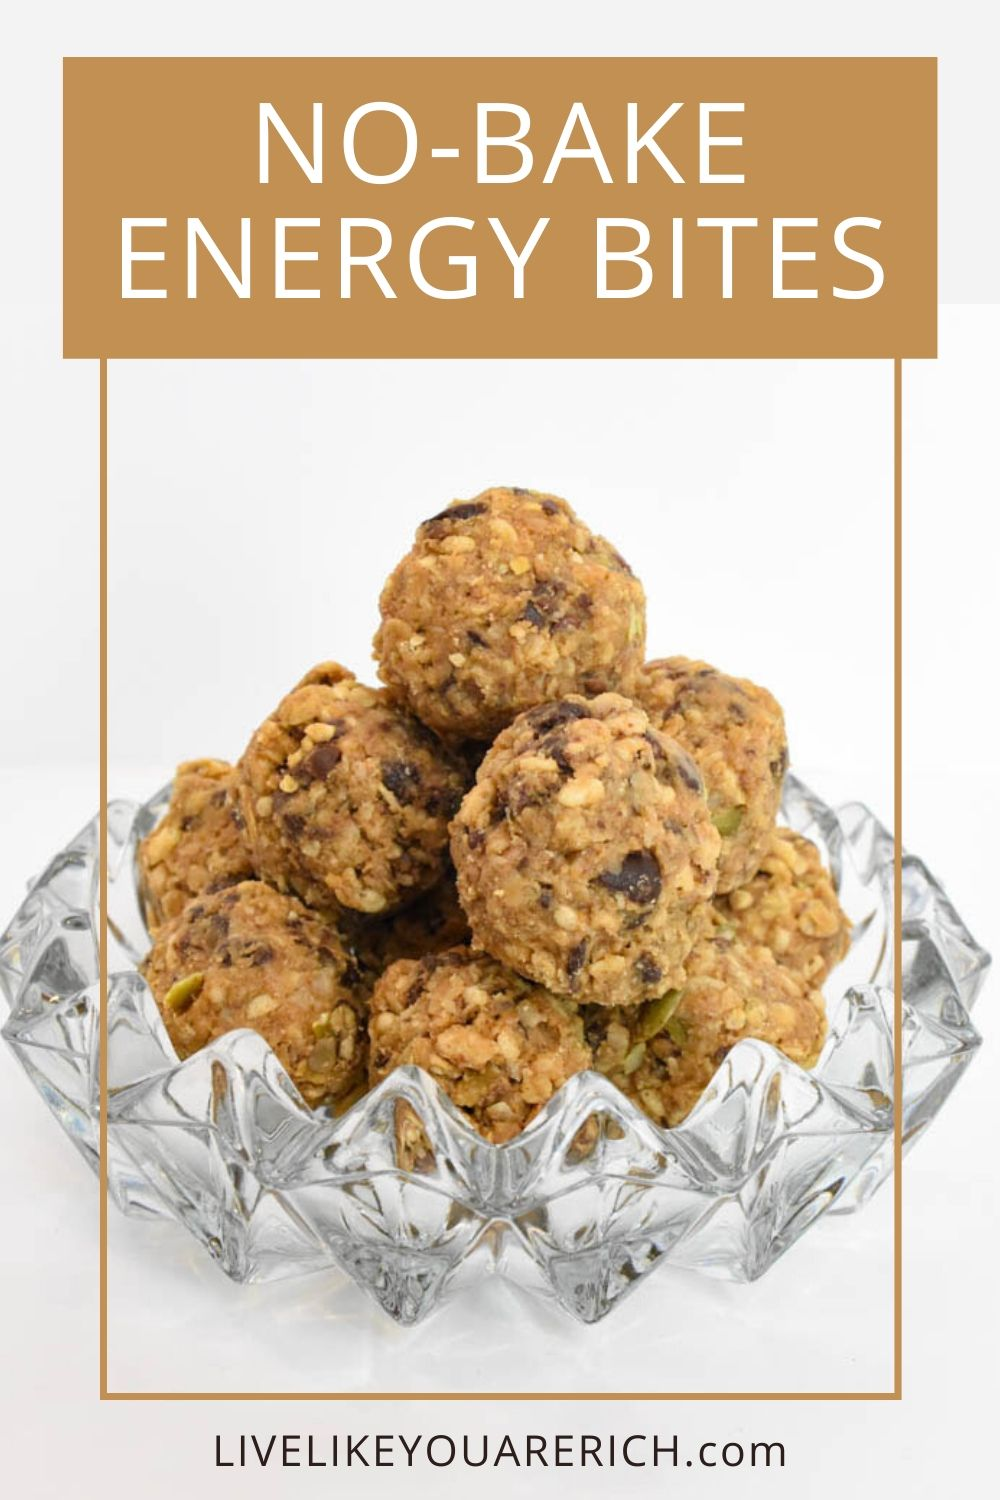 I've been making these super yummy no-bake healthy energy bites for years. They are easy to make, they have protein and fiber and yet are sweet enough to satisfy a sugar craving. This is a great snack for kids and the whole family.